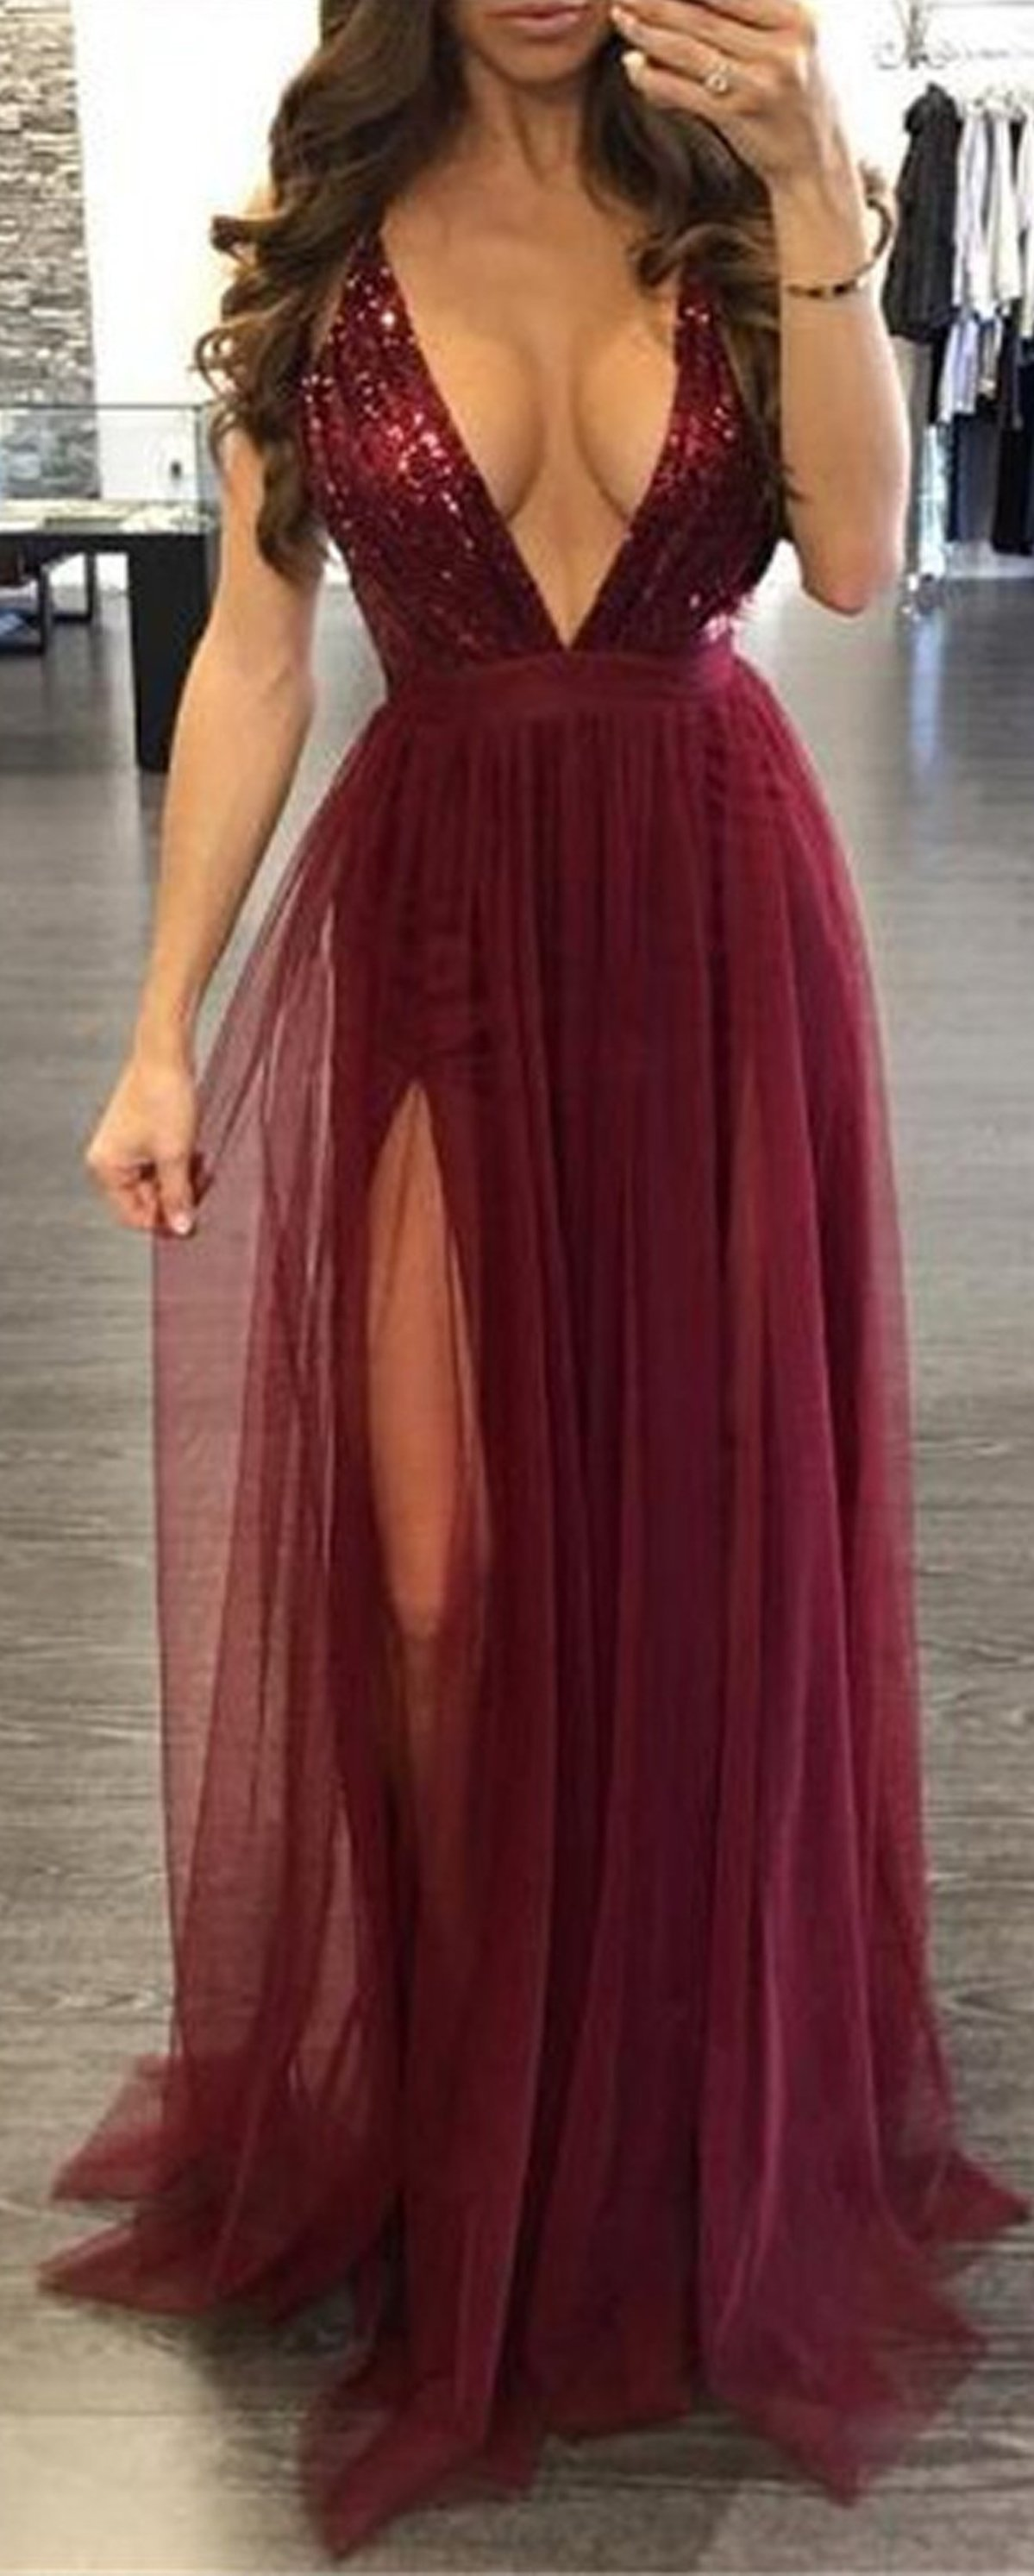 Elegant Glitter Sparkly Backless Chiffon Floor Length V Neck Burgundy Maxi  Dress with Thigh High Slit. Wedding Guest Outfit Idea. 36e7685a3